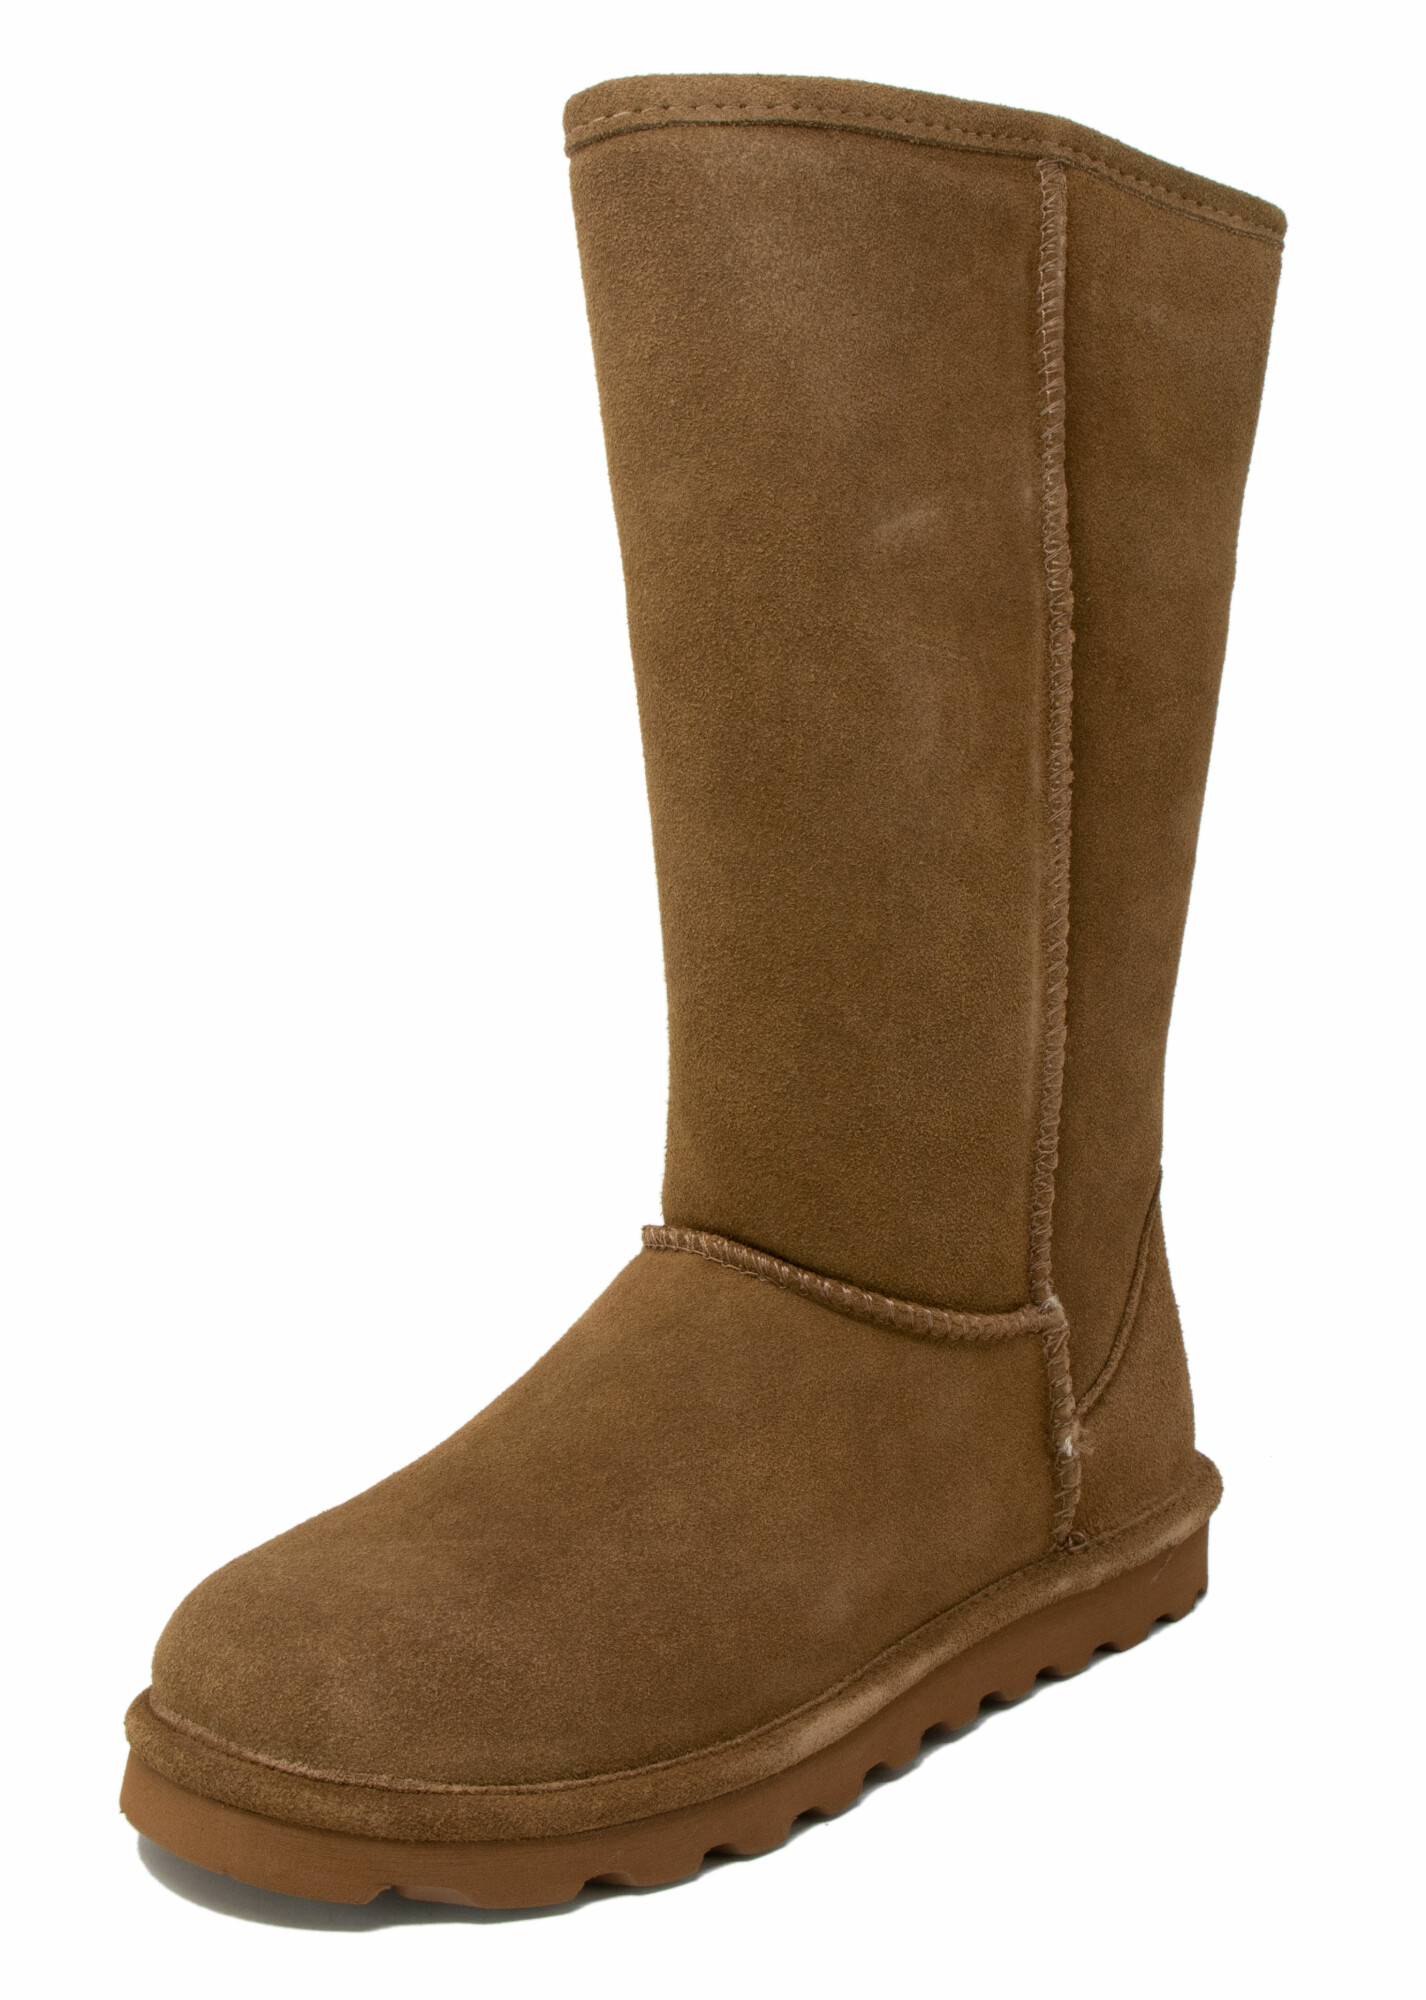 Bearpaw Women's Elle Tall Mid-Calf Suede - 10M - Hickory Ii